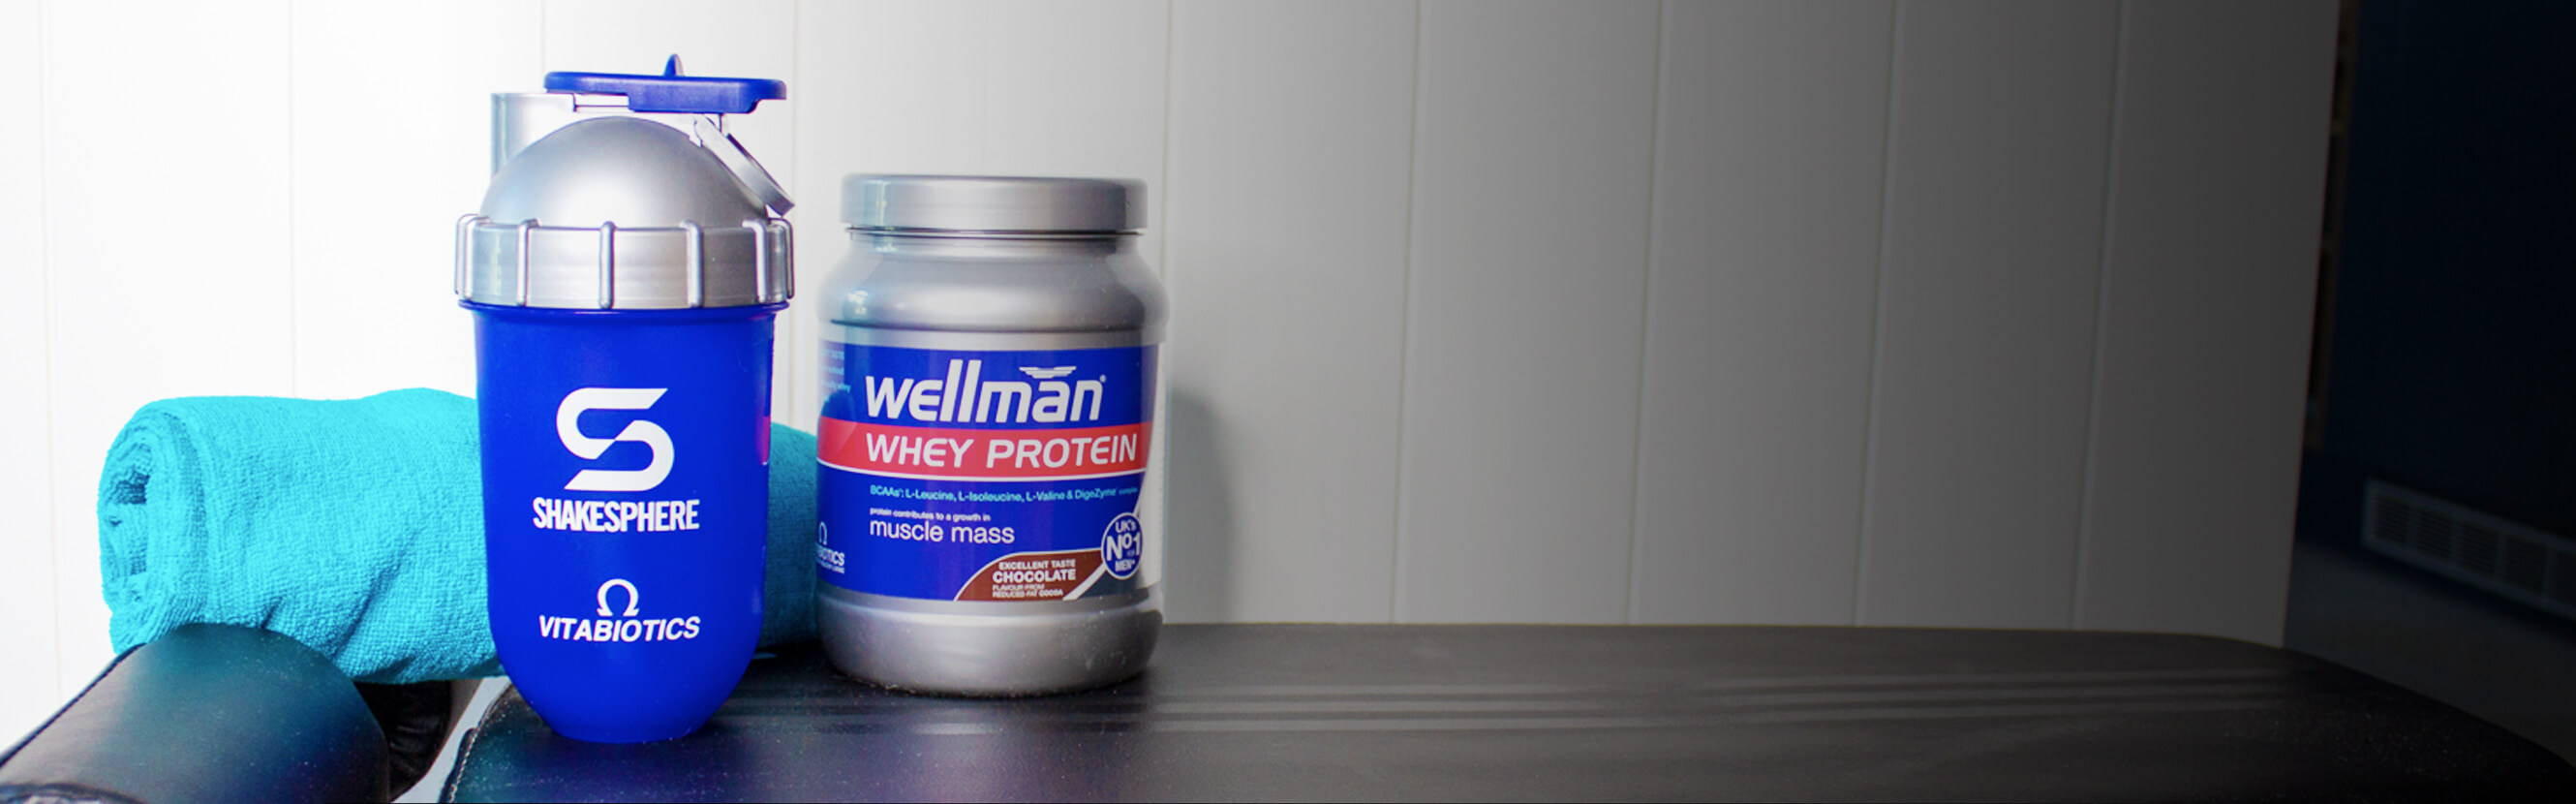 The one shaker you need. The Wellman ShakeSphere's innovative capsule design means there's no build up of powder and no need for a shaking ball either. No trapped bacteria to create bad odours. Just effective mixing, easier carrying and a smart design that works for protein powder and soft fruit alike.